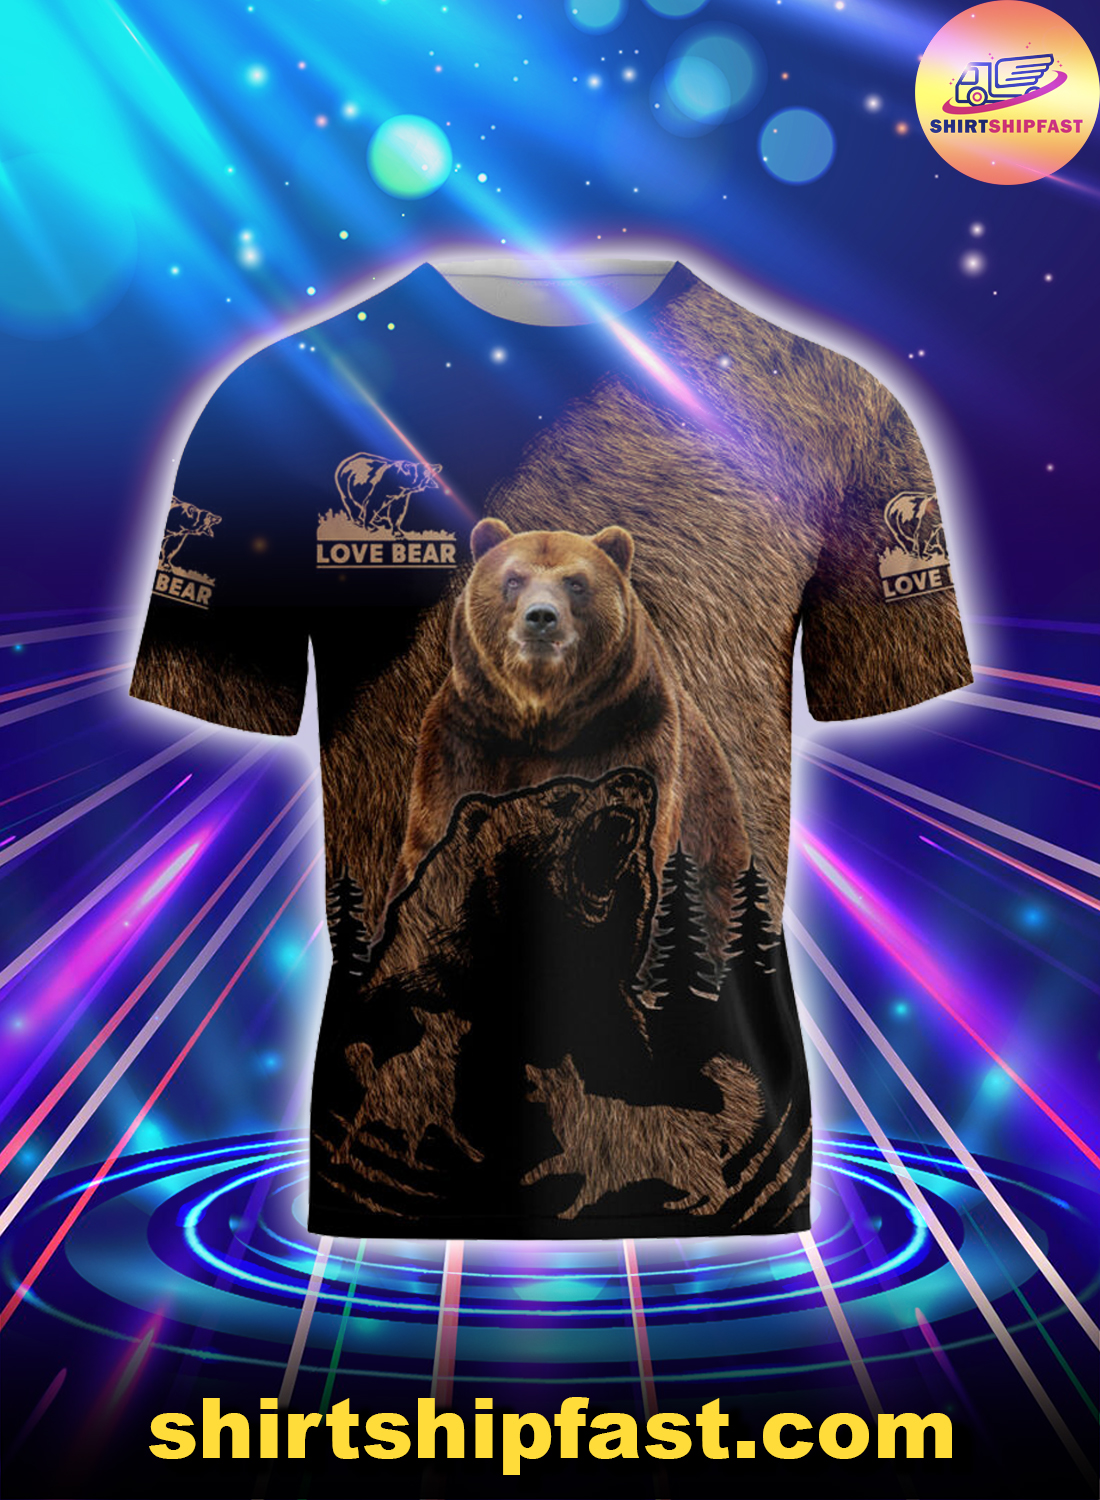 Love bear all over printed t-shirt